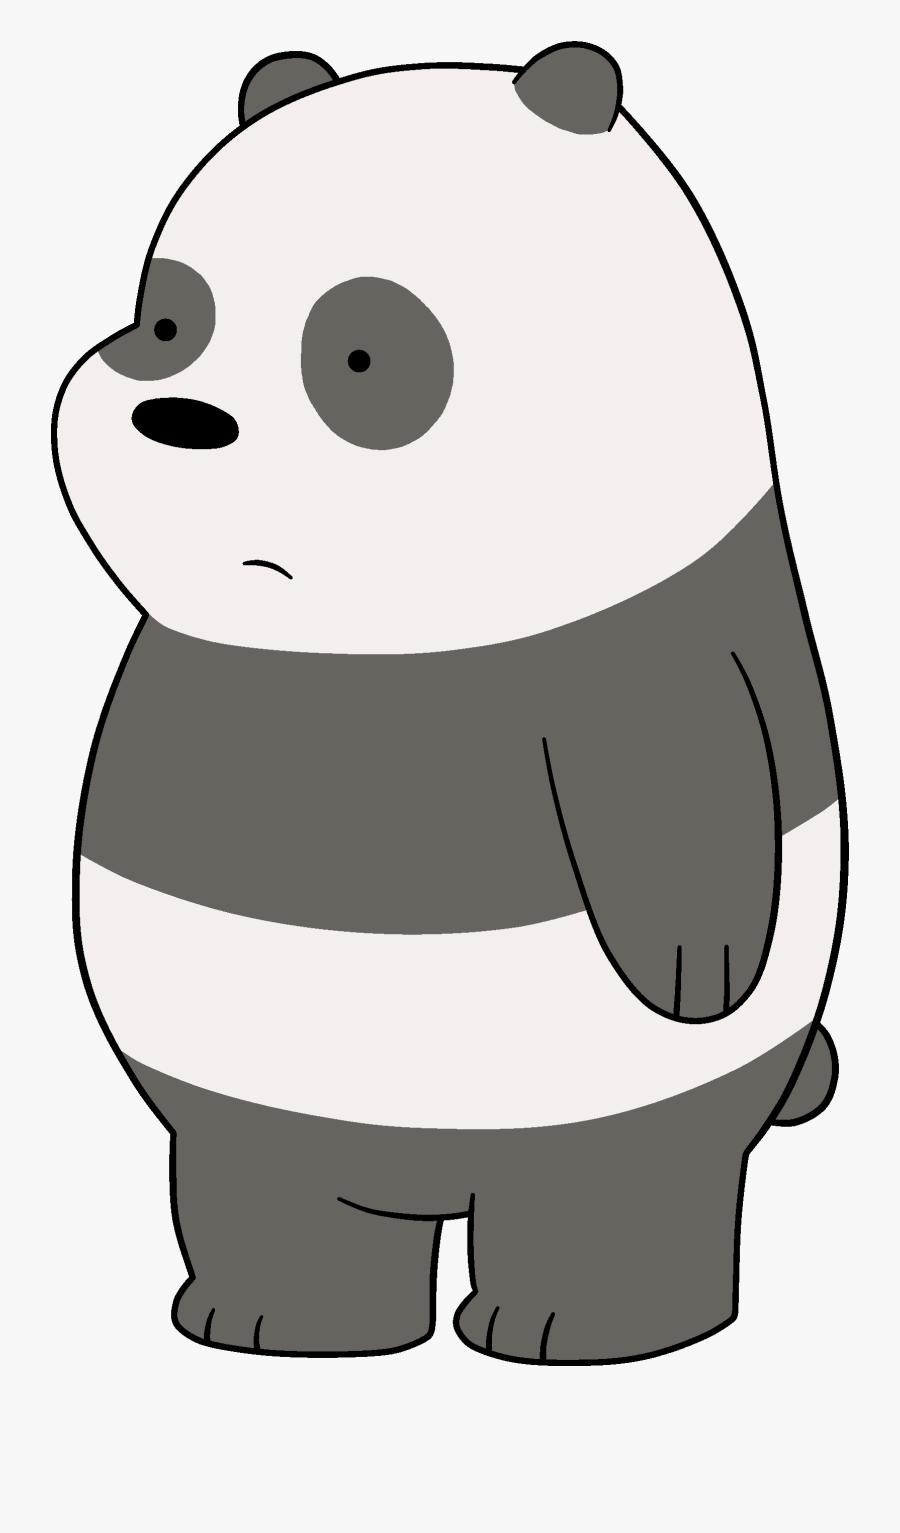 Panda From We Bare Bears - We Bare Bears Panda Cub, Transparent Clipart